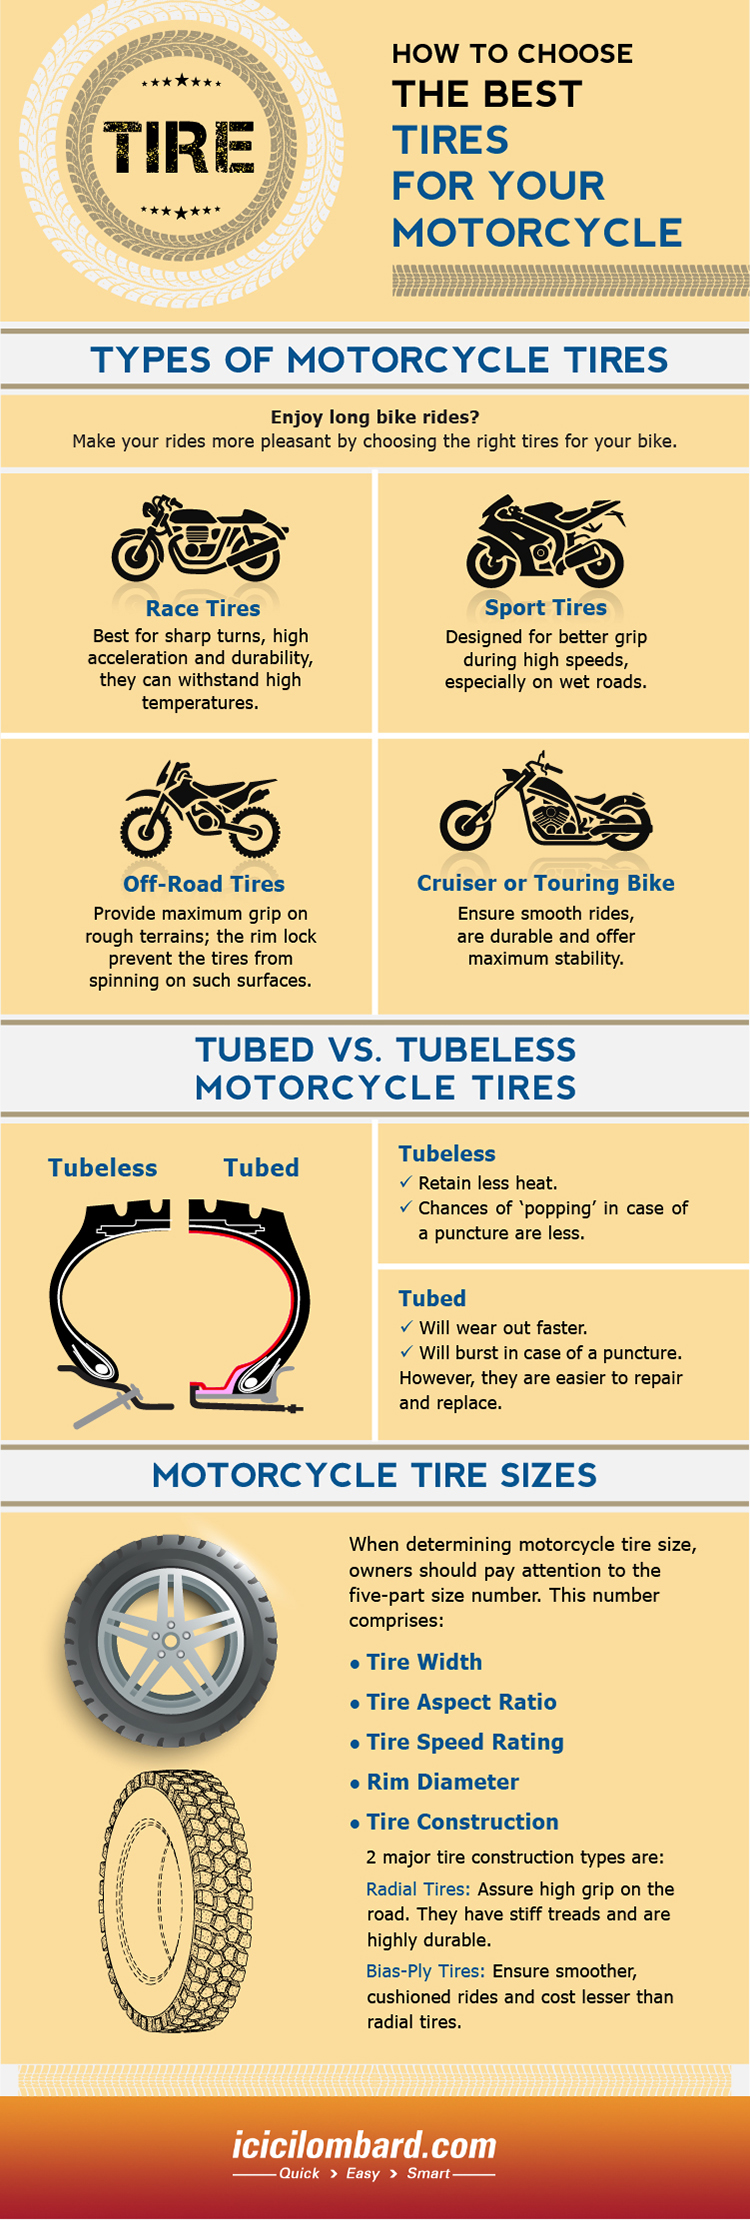 Best Tires For Motorcycle